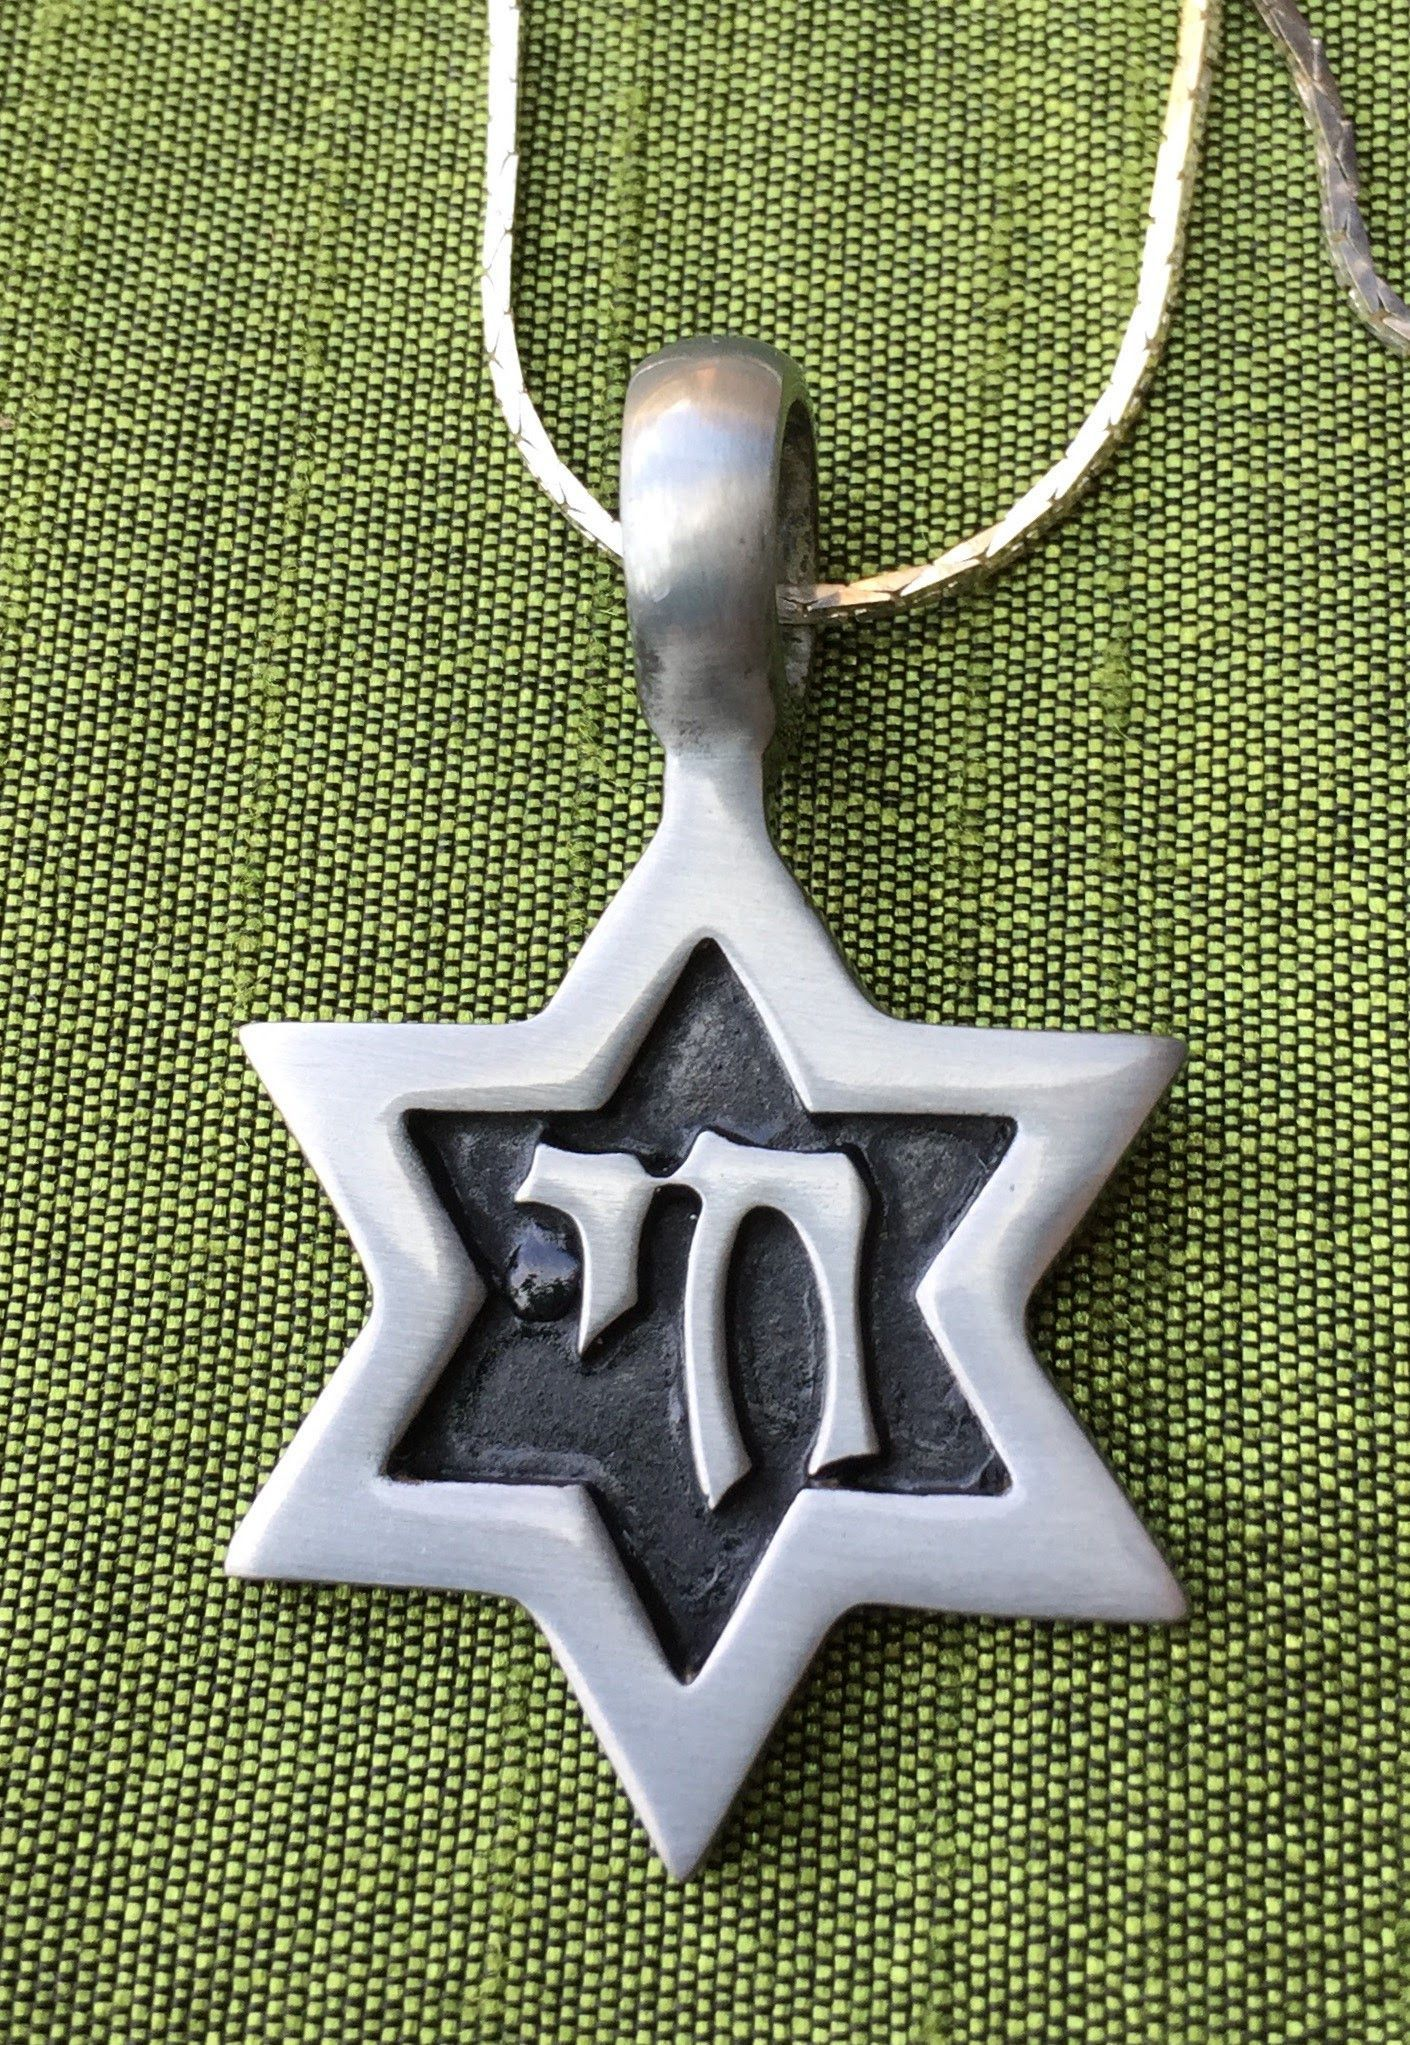 18 20 jewish star with chai symbol pendant on a silver chain 18 18 20 jewish star with chai symbol pendant on a silver chain biocorpaavc Gallery